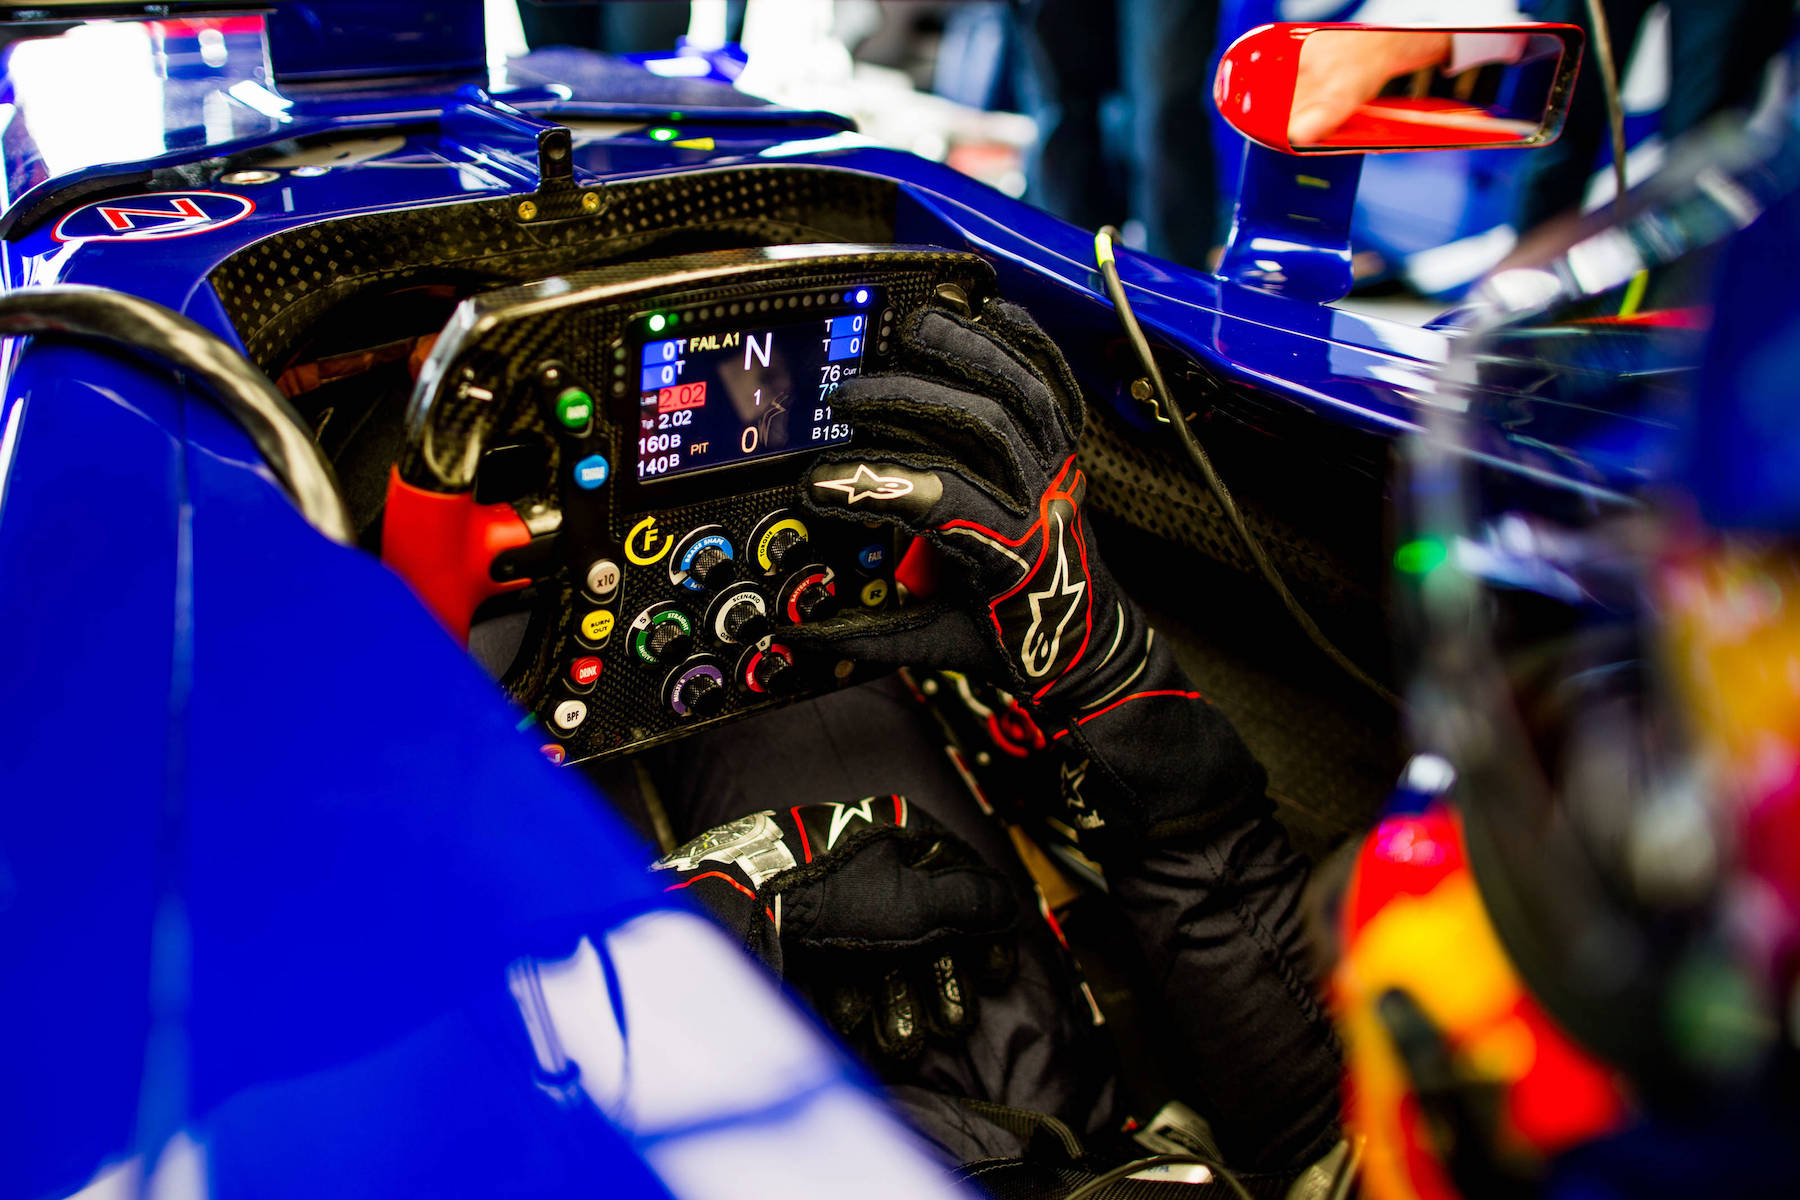 2017 Carlos Sainz | Toro Rosso STR12 | 2017 British GP FP2 2 copy.jpg